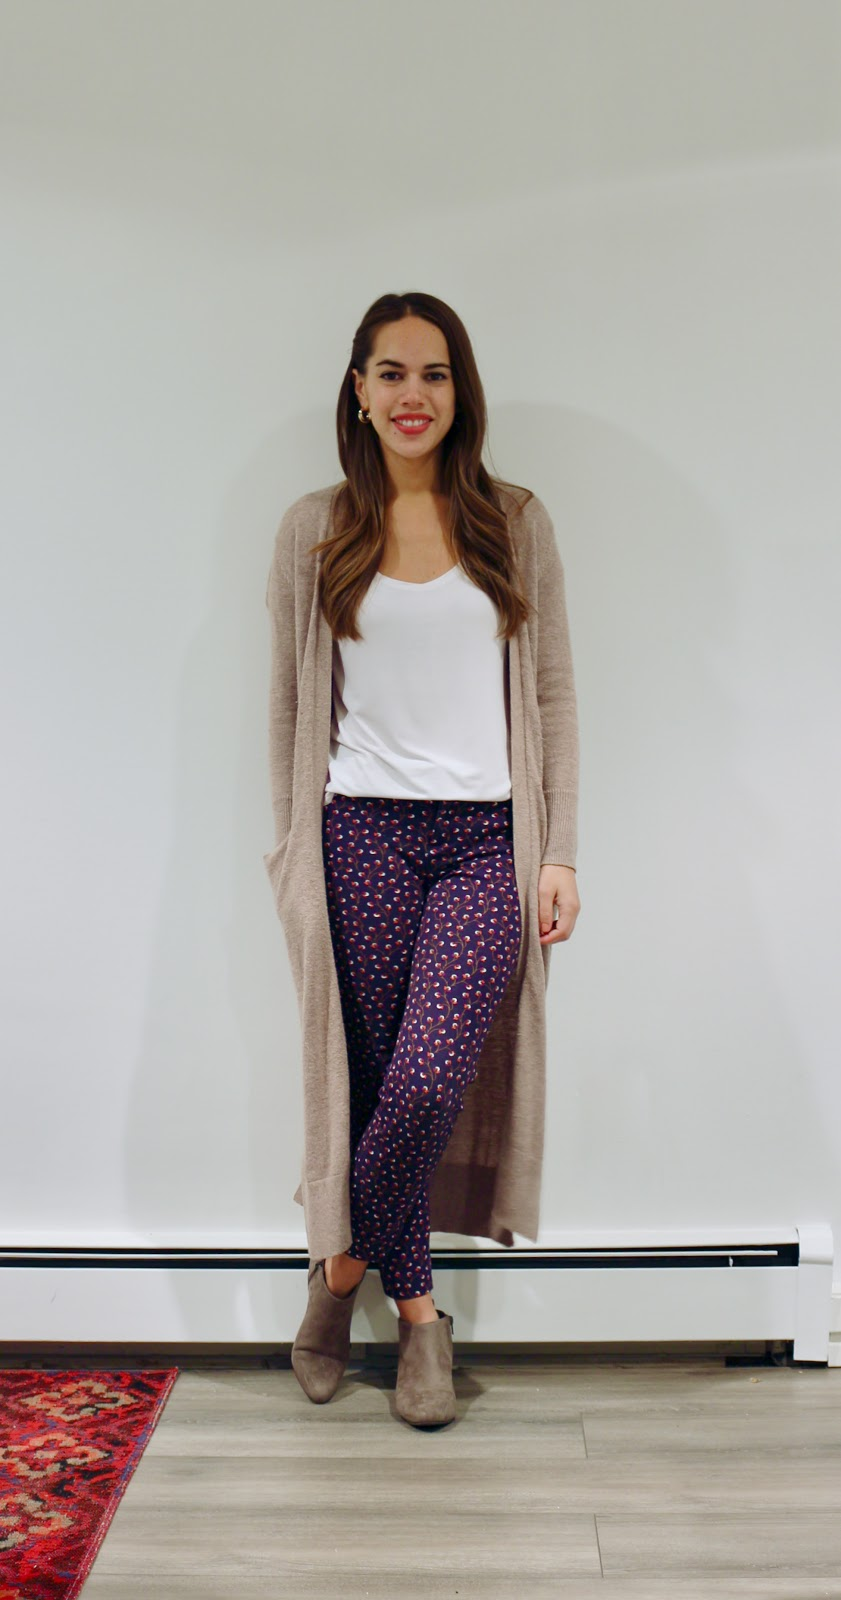 Jules in Flats - Super Long Open Front Sweater - Duster Cardigan with Pixie Ankle Pants (Business Casual Fall Workwear on a Budget)